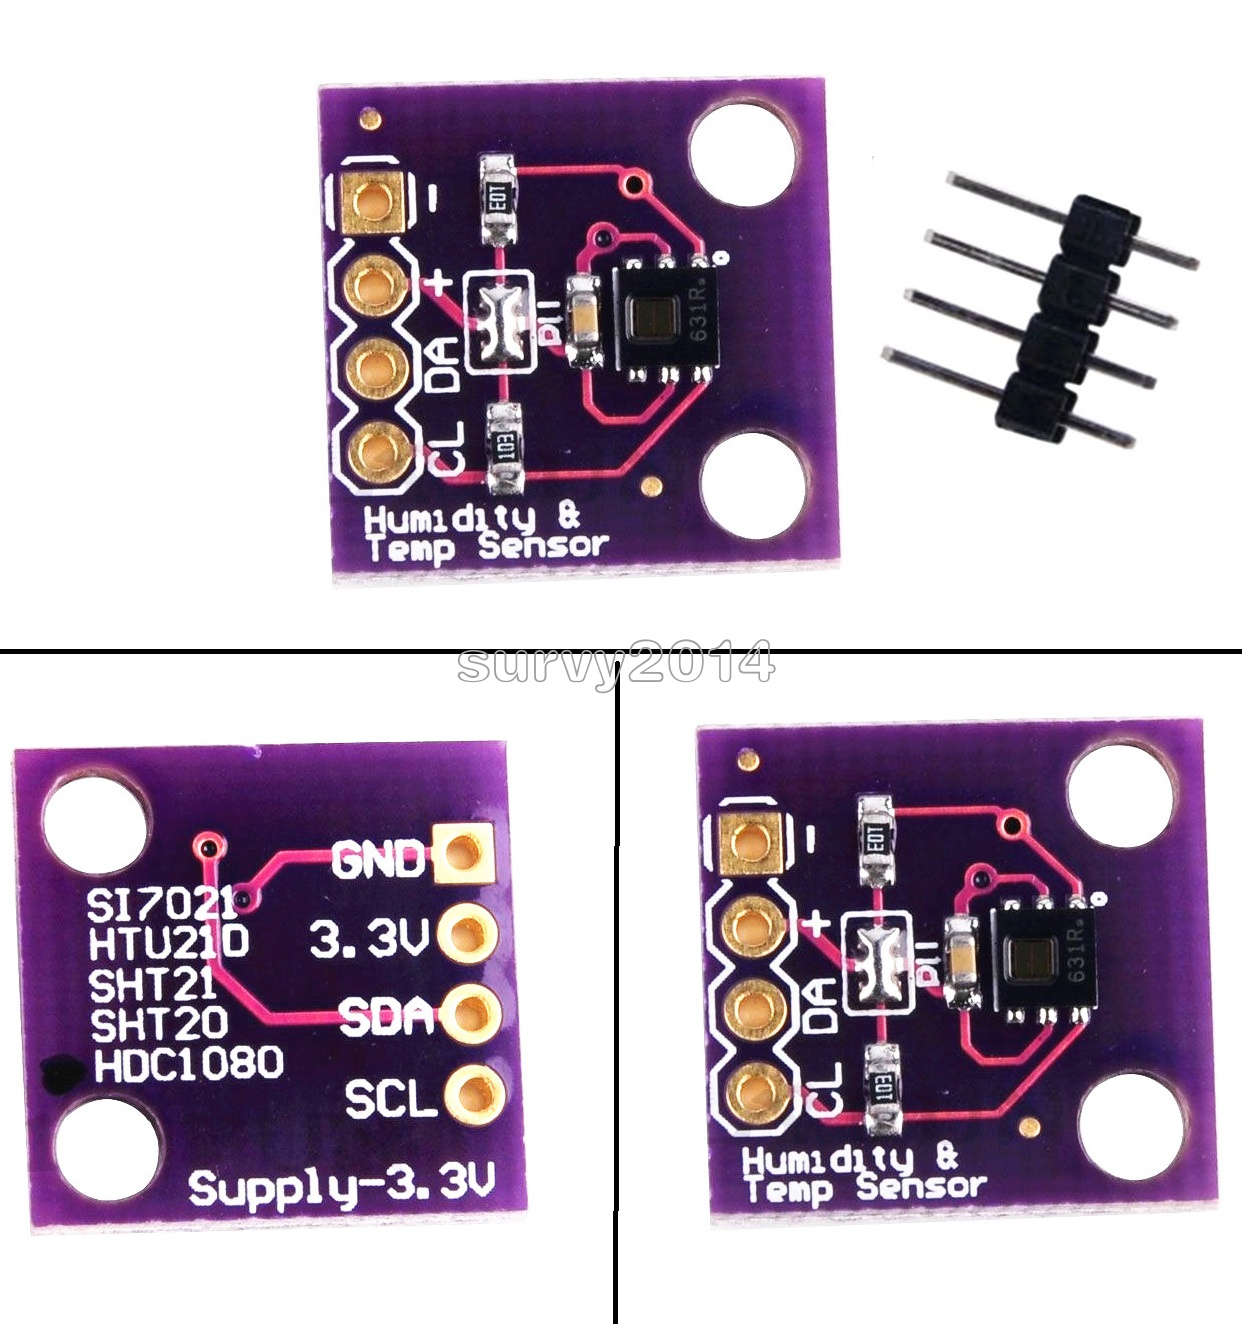 Details about HDC1008 Digital Temperature and Humidity Sensor Breakout  Board for Arduino